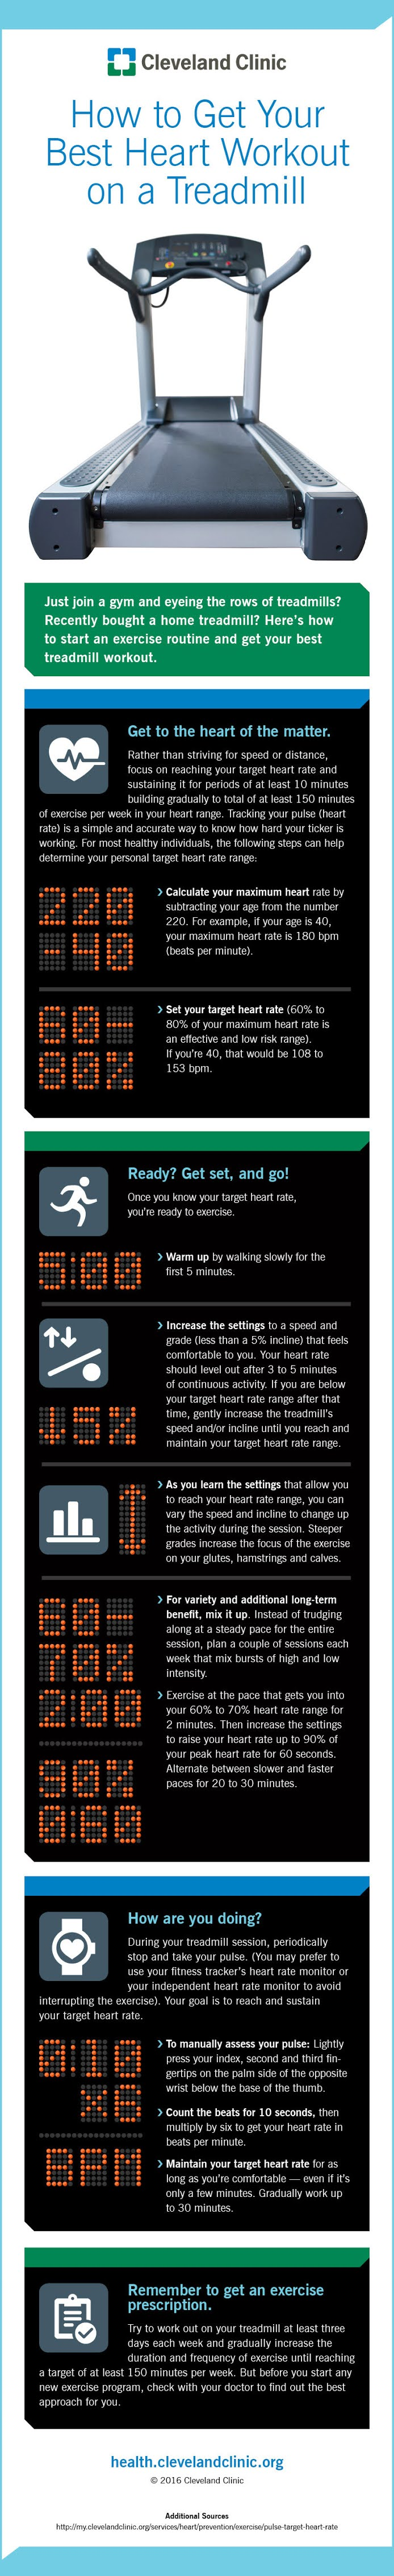 How to Get Your Best Heart Workout on a Treadmill #infographic #Health & Fitness #Exercise #Treadmill